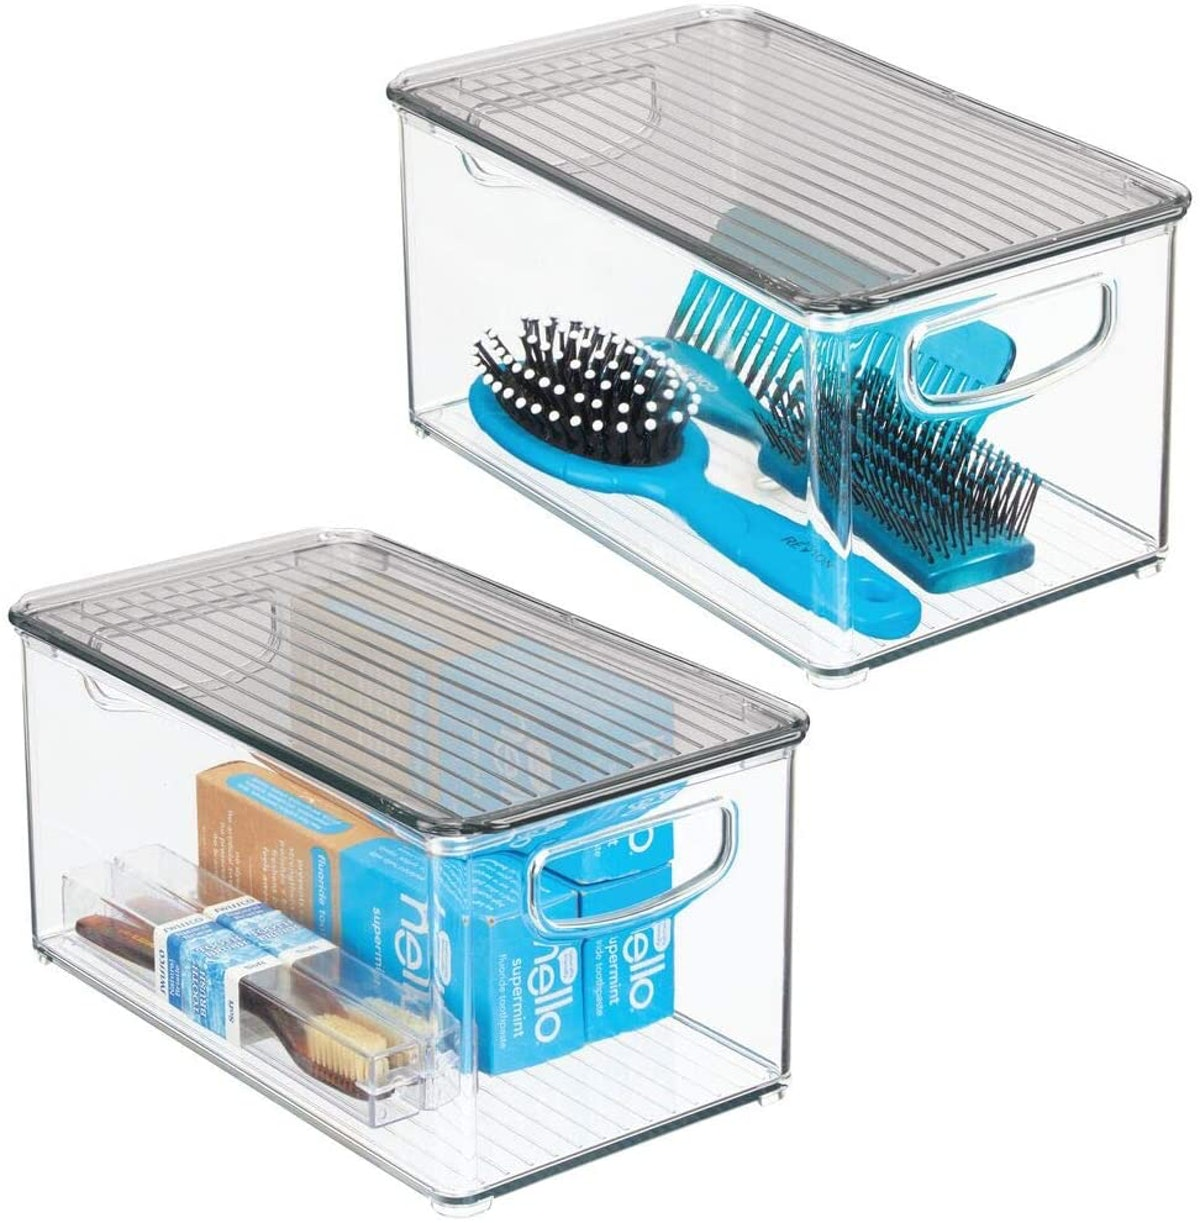 mDesign Stackable Storage Boxes (2-Pack)